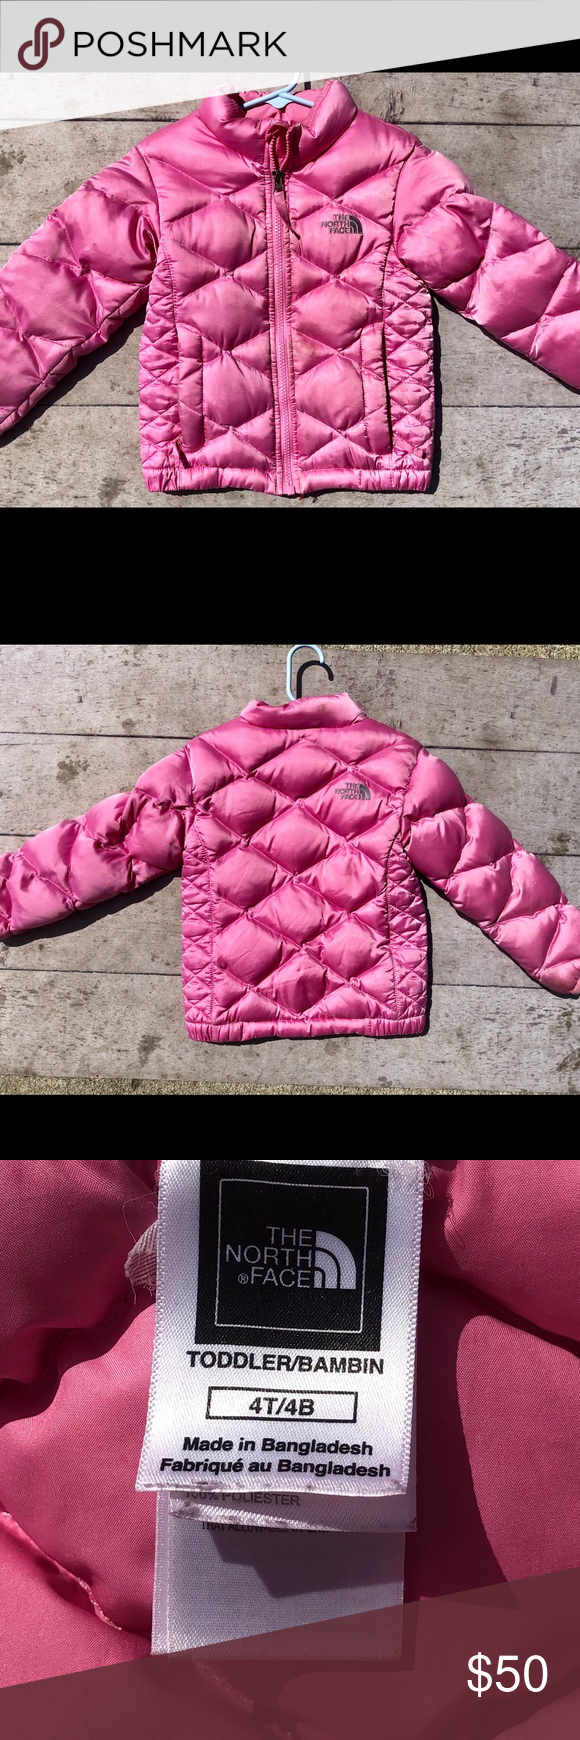 The North Face Toddler Down Jacket The North Face Down Jacket Toddler [ 1740 x 580 Pixel ]